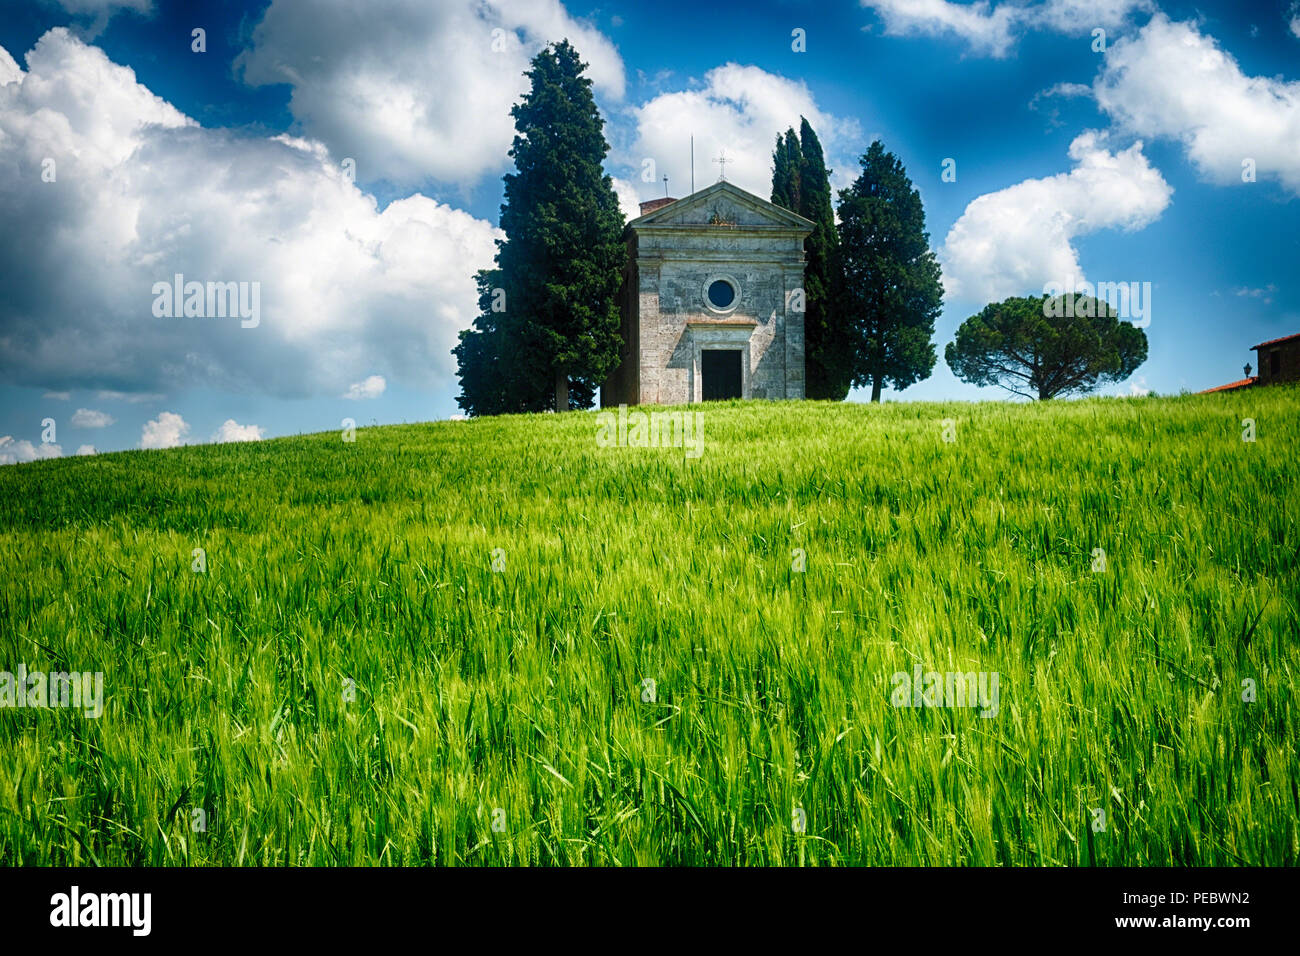 Chapel of The Madonna Di Vitaleta in a Wheat Field with Cypress Trees, San Quirico D'Orcia, Tuscany, Italy - Stock Image